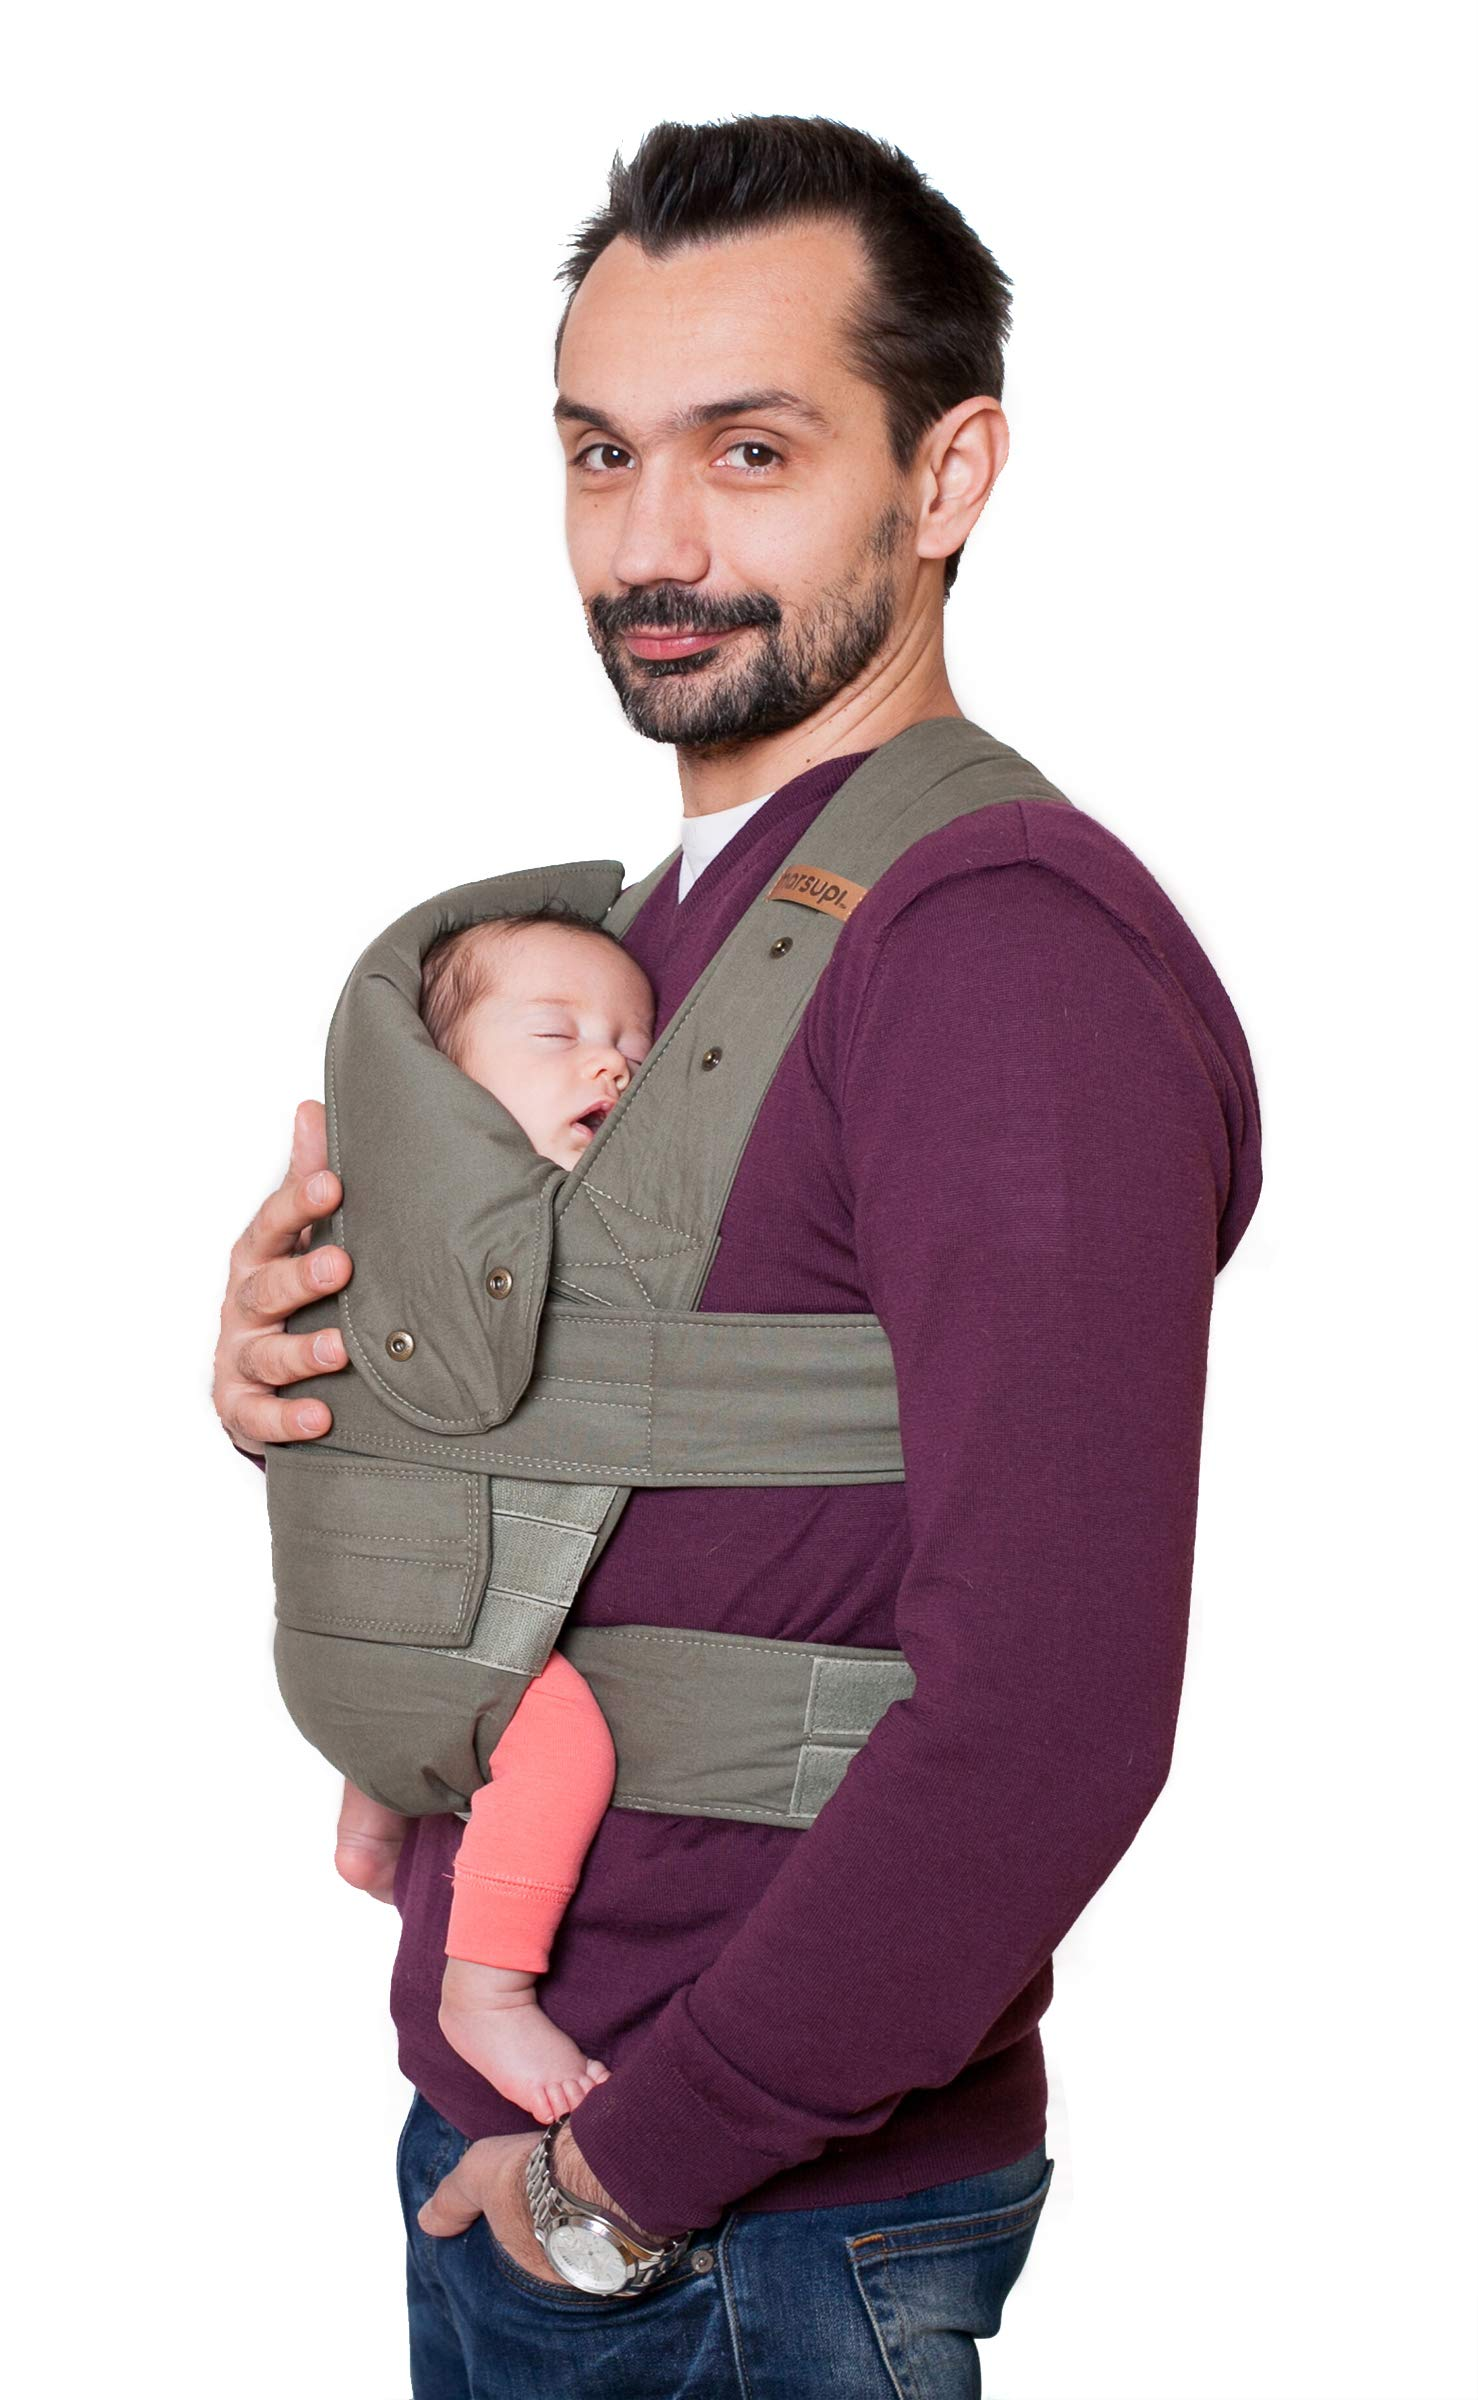 marsupi Baby and Child Carrier, Version 2.0 Classic (Olive/Oliv, XL) Marsupi Particularly compact and lightweight front & hip carrier (weight approx. 400 g) that fits in any pocket. Revised Version 2.0 Easy to put on thanks to unique Velcro system. 100% organic cotton, made in Europe. Machine washable up to 30°. Perfect support for the little ones, optimum weight distribution for the parents, wide base for orthopaedically correct posture (M position) and thigh support for your growing child 3